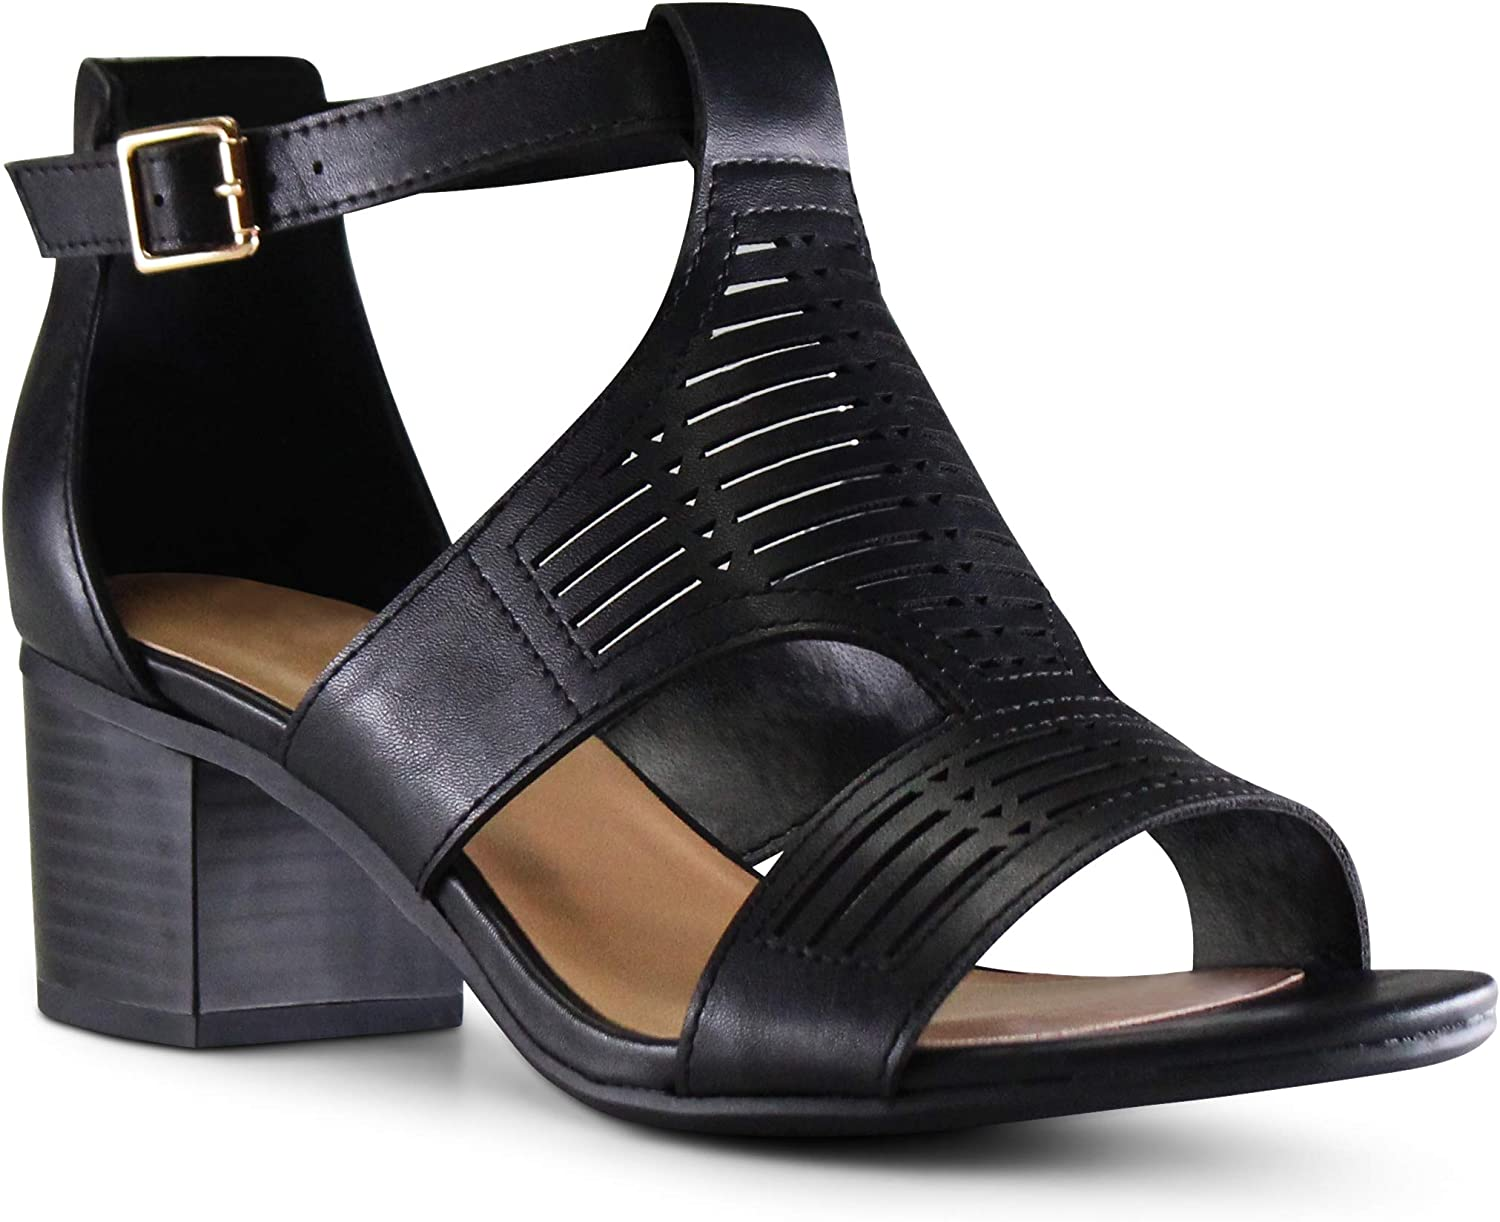 MARCOREPUBLIC Norway Womens Open Toe Perforated Laser Cutout Caged Chunky Heels Dress Sandals